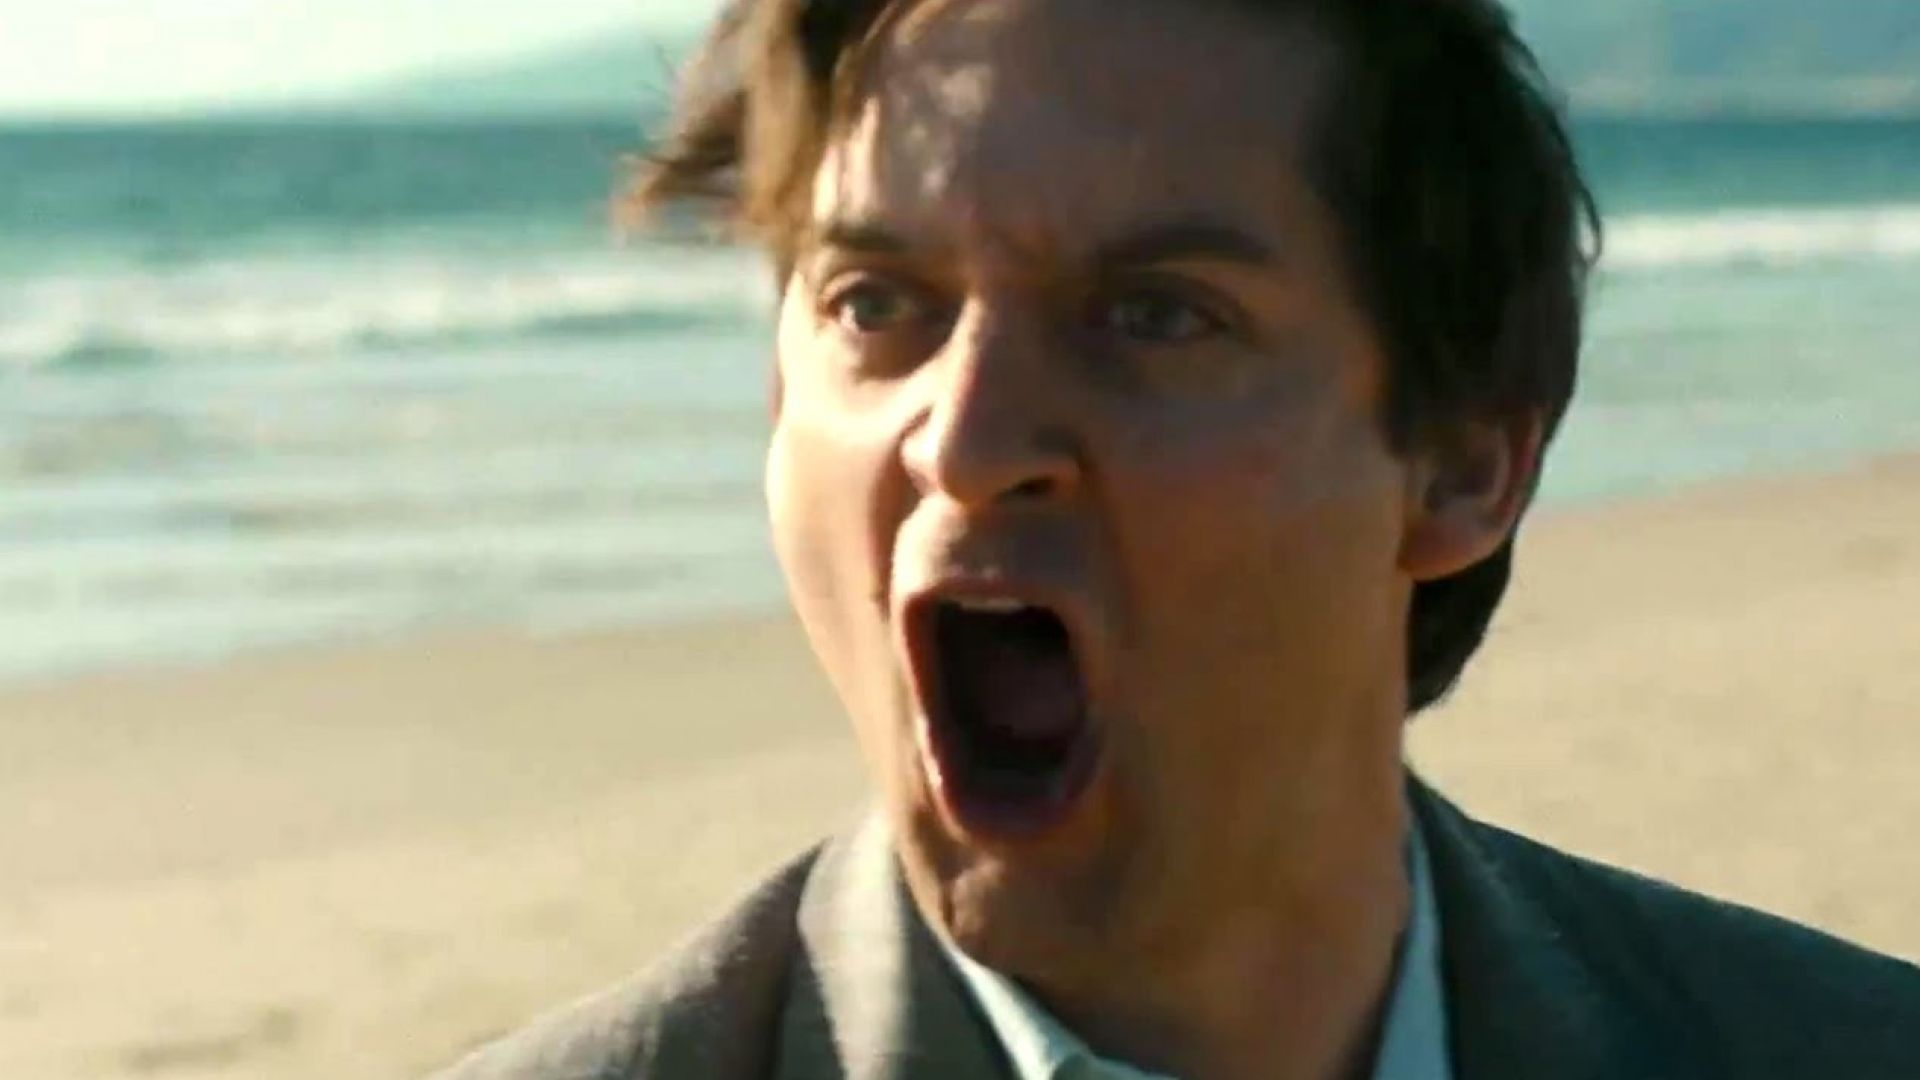 New 'Pawn Sacrifice' featurette goes into the character of B